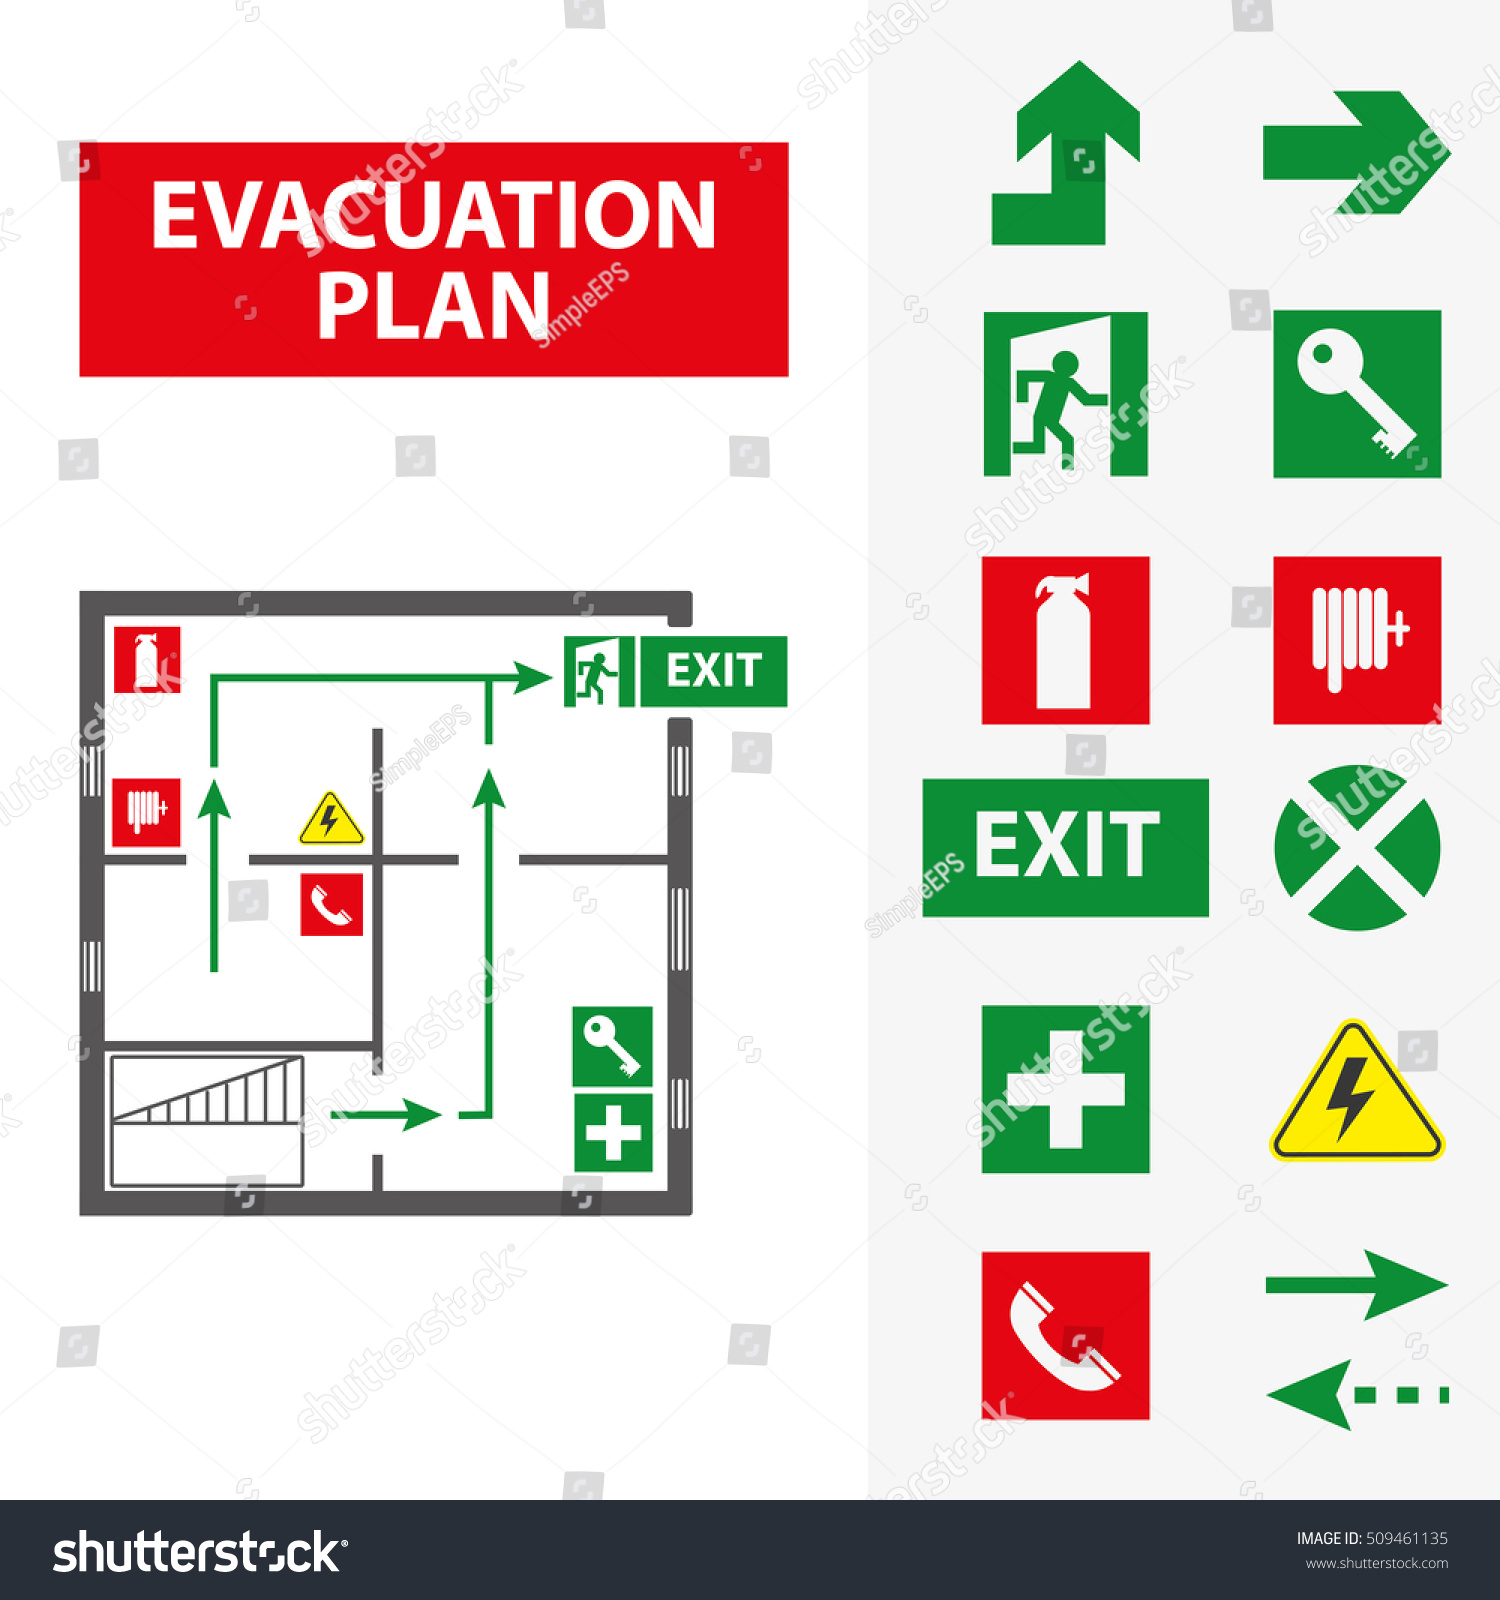 Signs evacuation plan building case fire stock vector 509461135 signs for the evacuation plan of the building in case of fire or a hazardous incident biocorpaavc Gallery